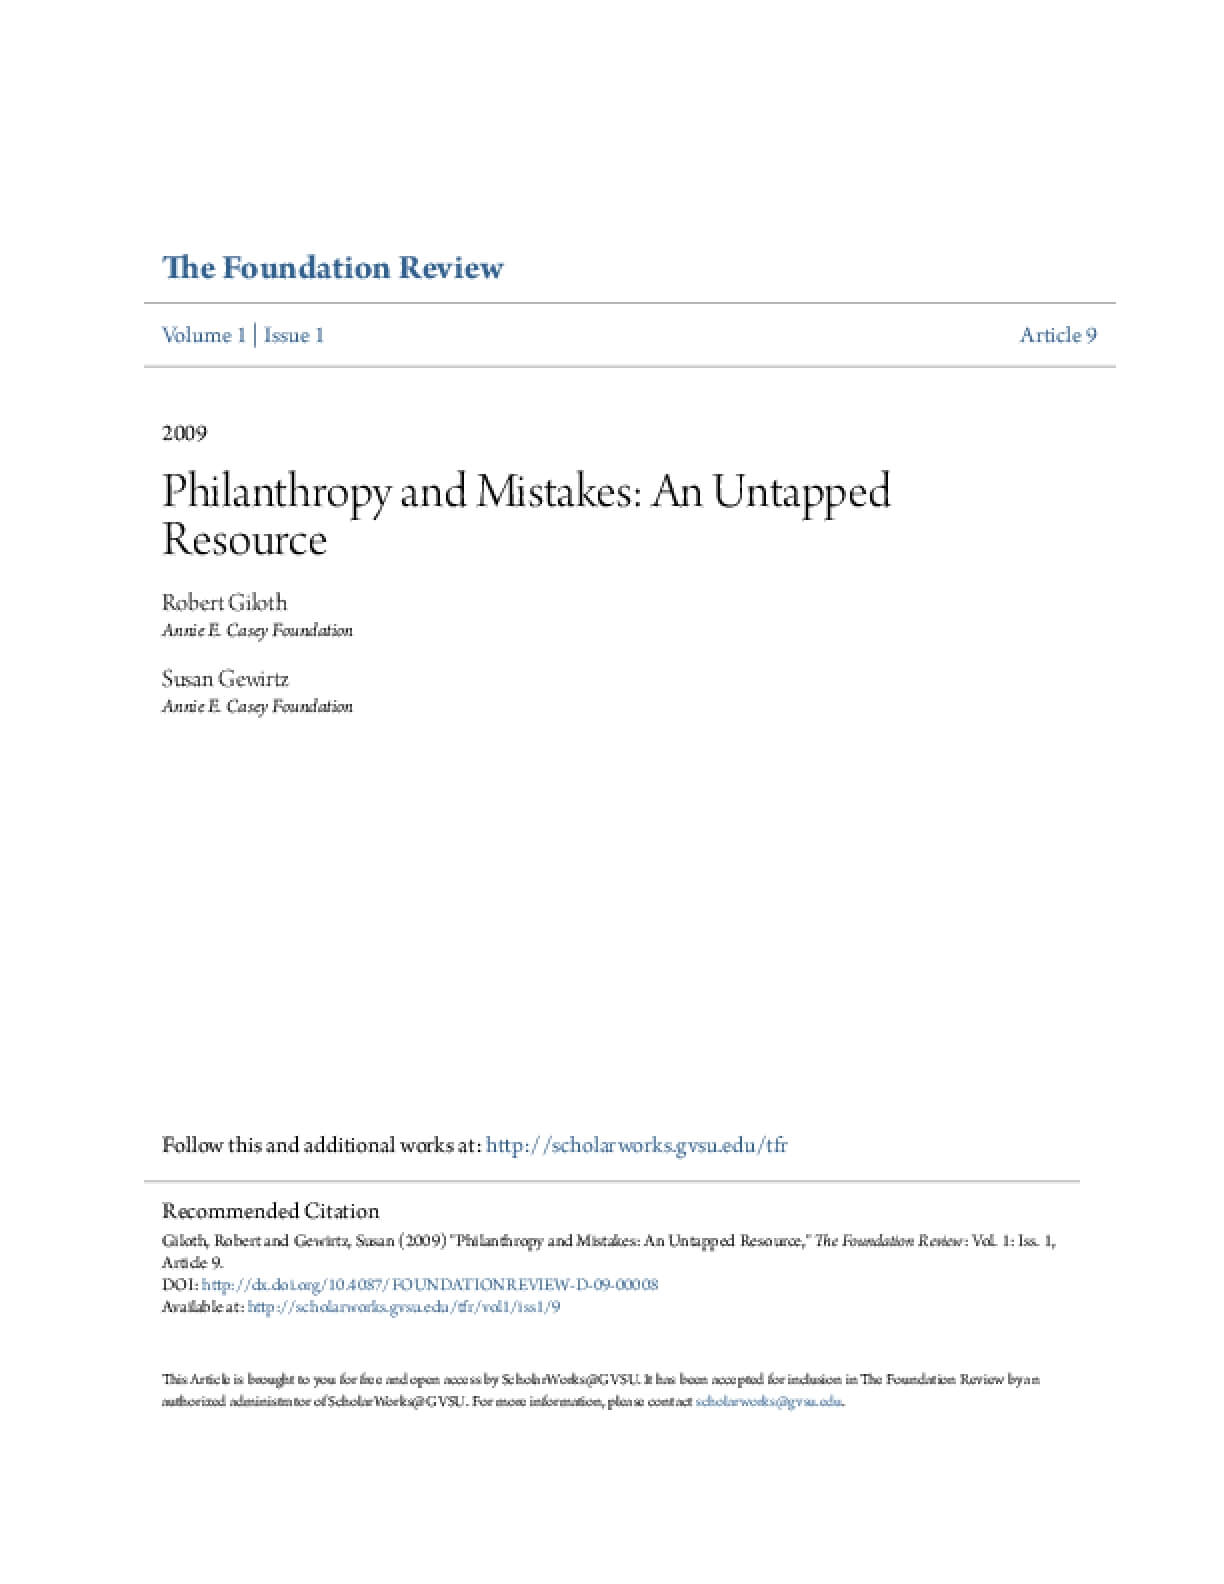 Philanthropy and Mistakes: An Untapped Resource